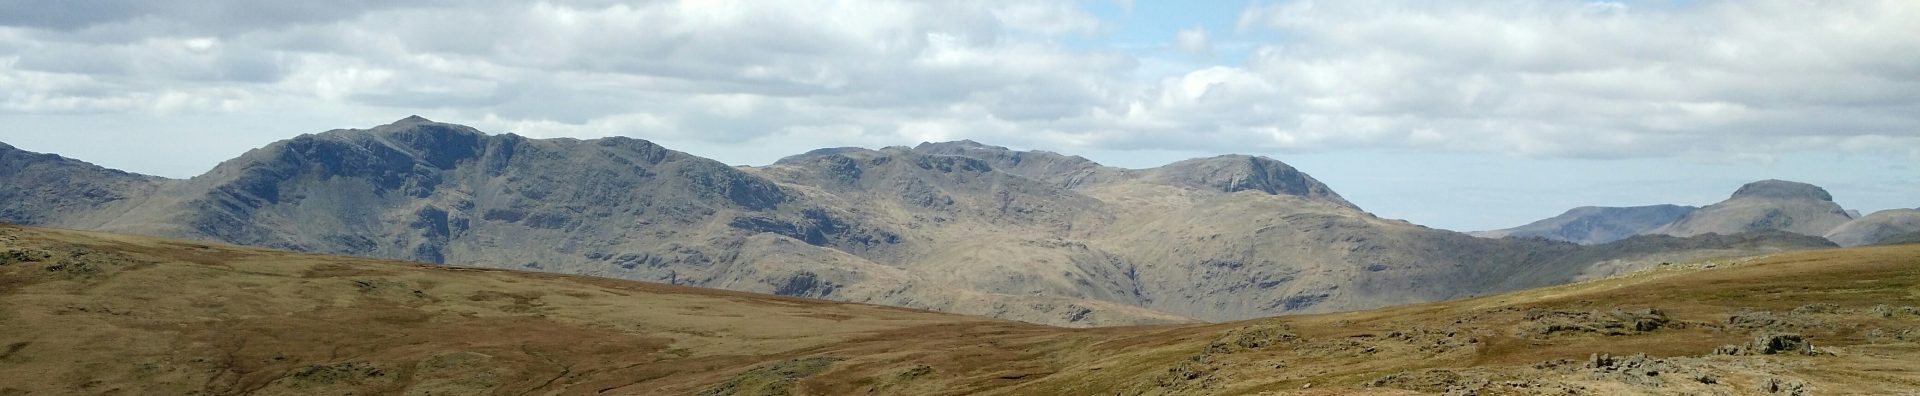 Bowfell to Great Gable from Langdales